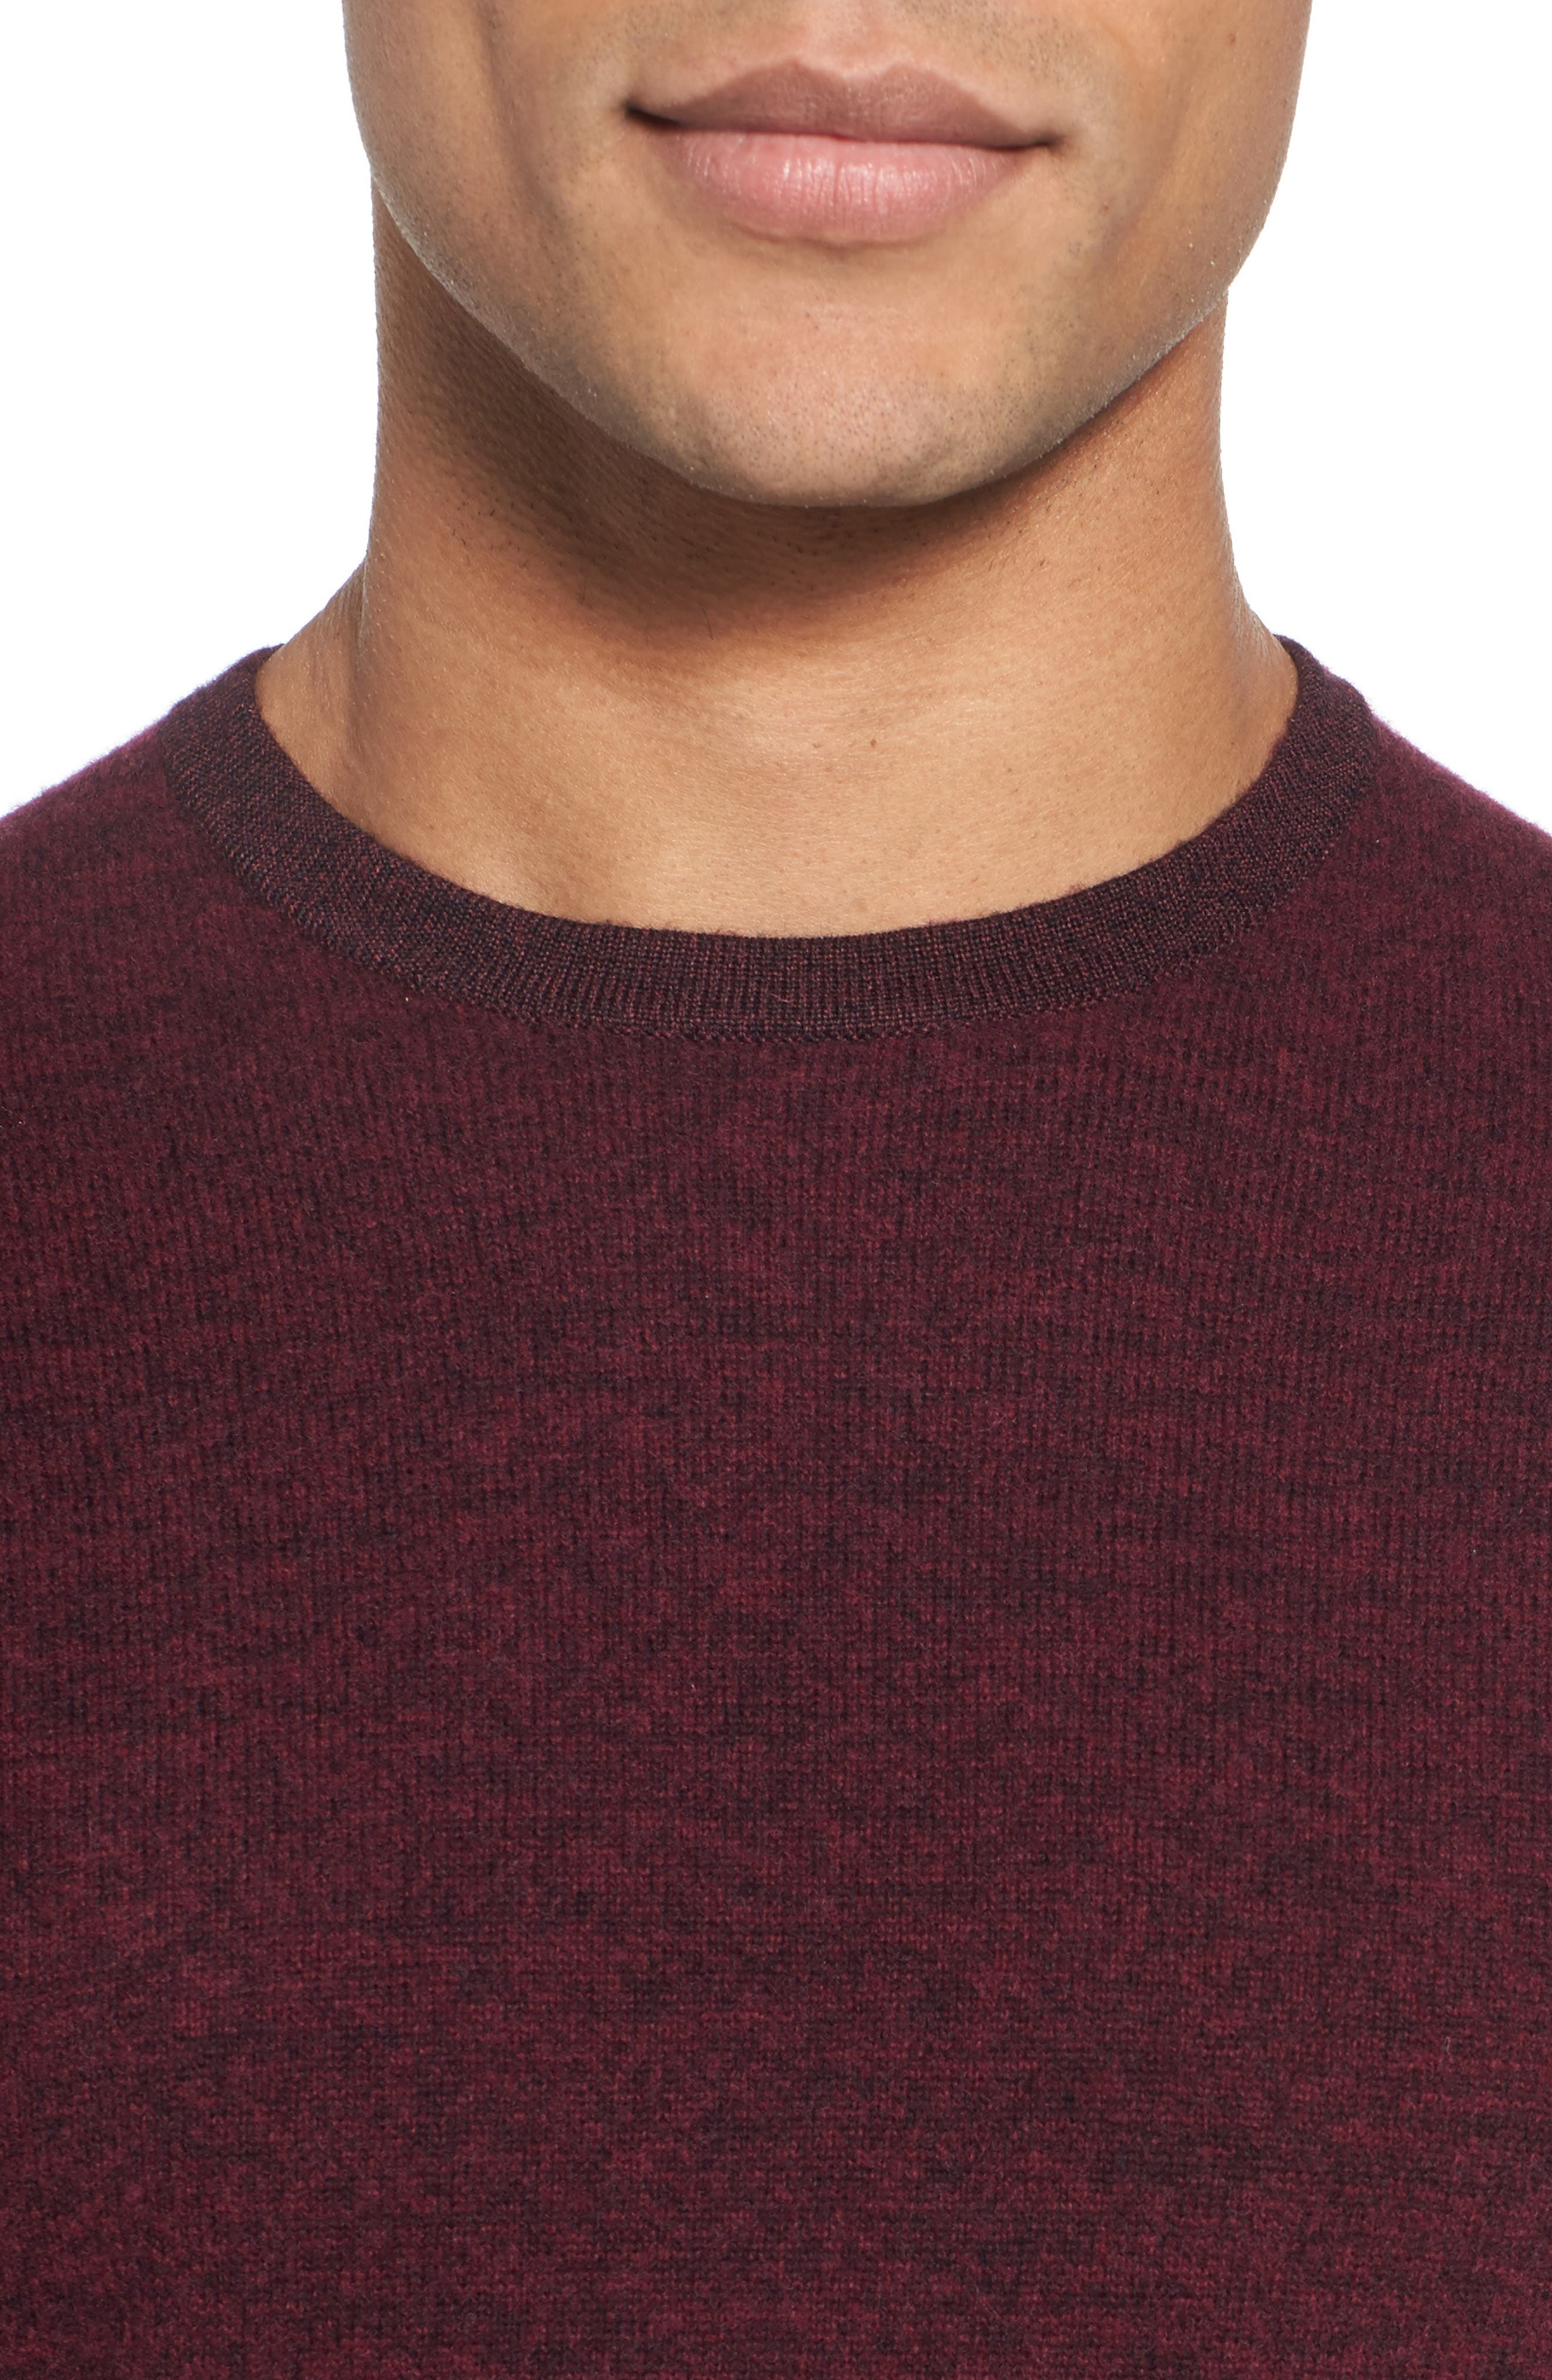 Boiled Wool Blend Crewneck Sweater,                             Alternate thumbnail 4, color,